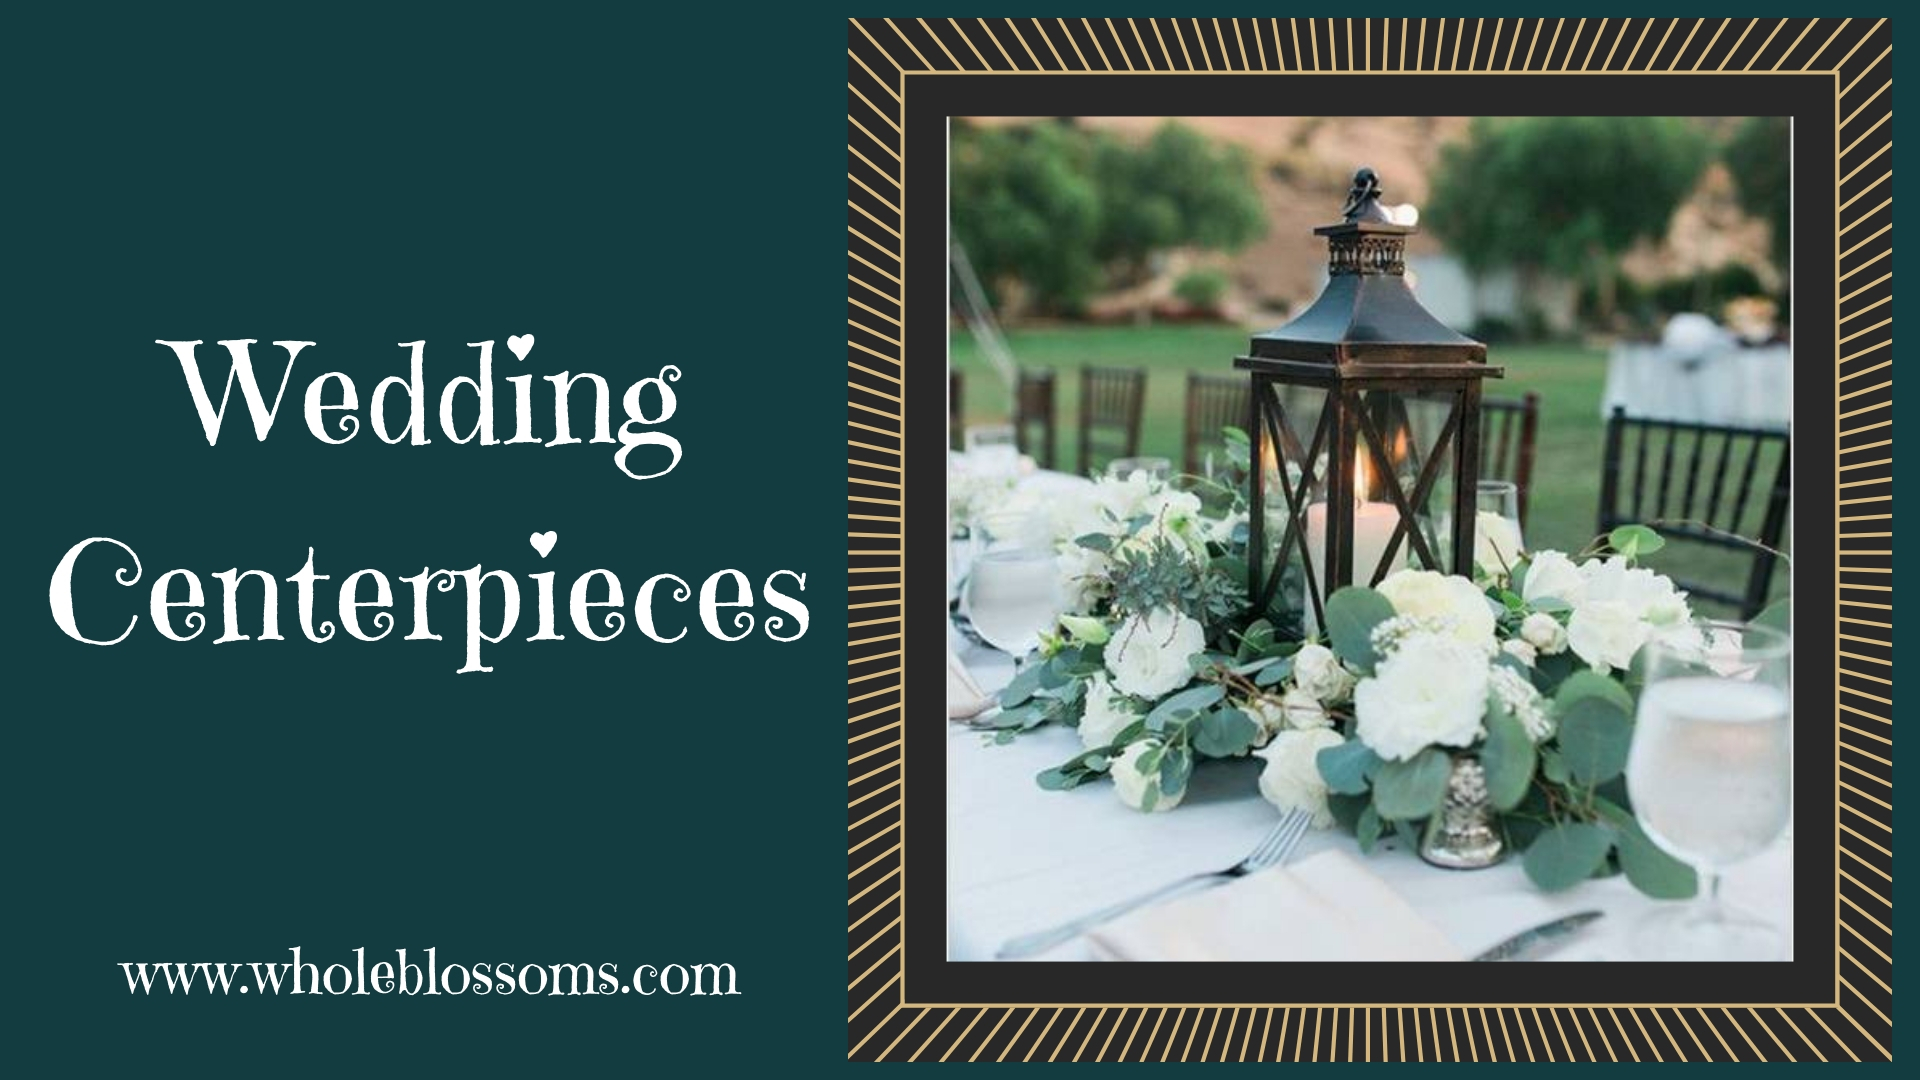 Buy Amazing Wedding Centerpieces at the Lowest Price